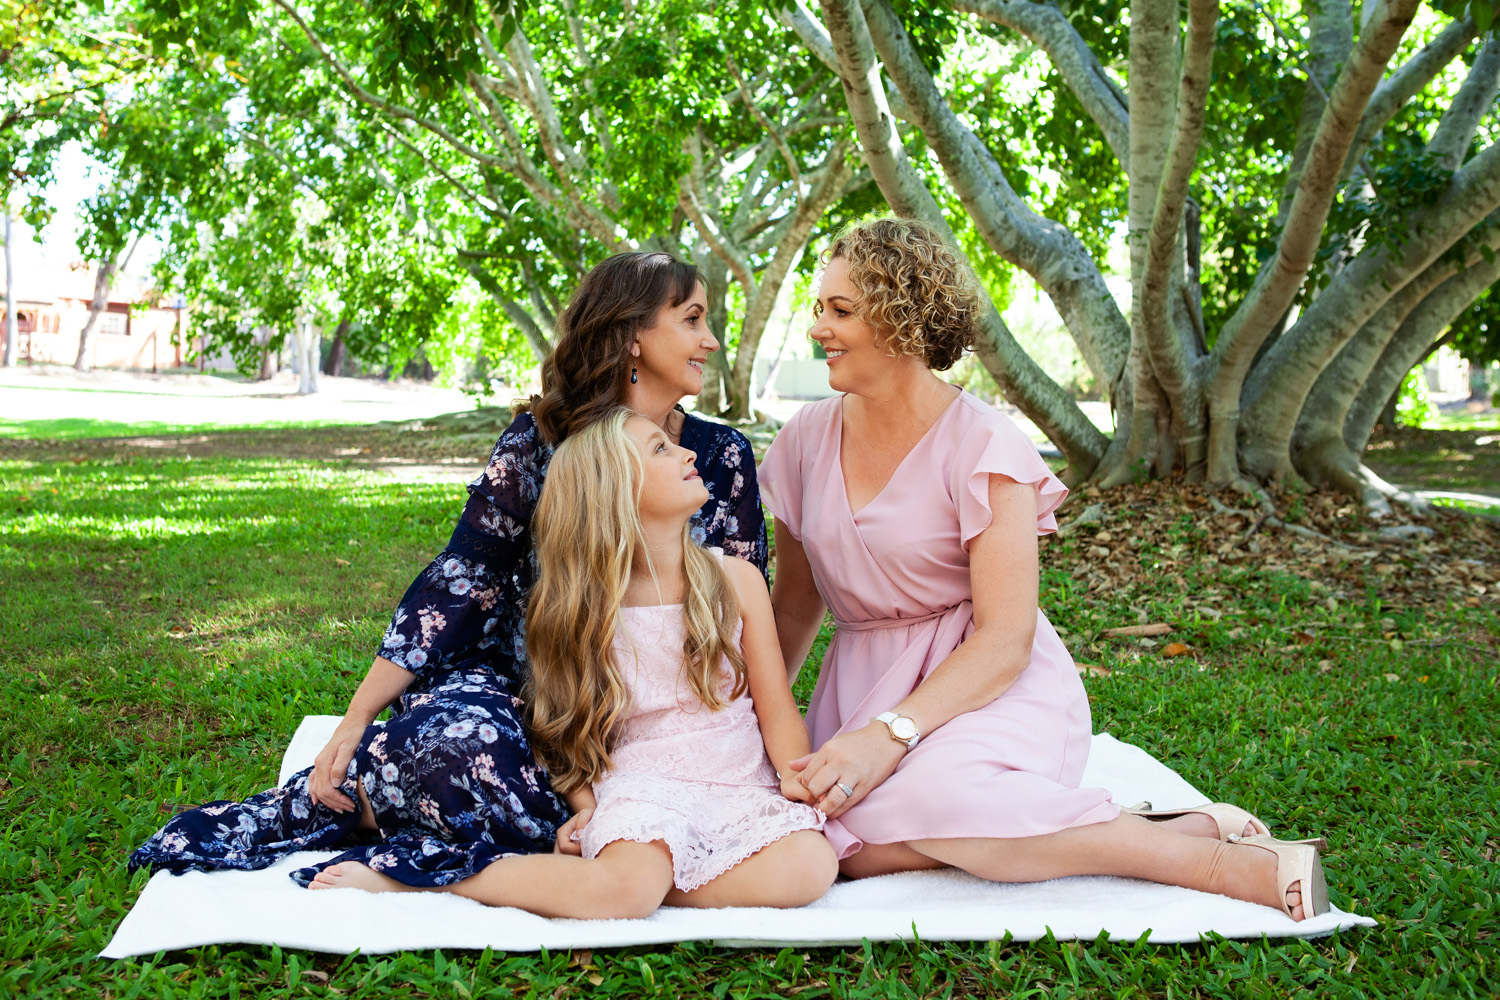 family looking at each other, @lananoir, gold coast family portrait photographer, gold coast family portrait photography, robina photographer, broadbeach photographer, gold coast photographer, gold coast best photographer, gold coast best family photographer, gold coast family photographer, gold coast family photography, same sex family, same sex family photography